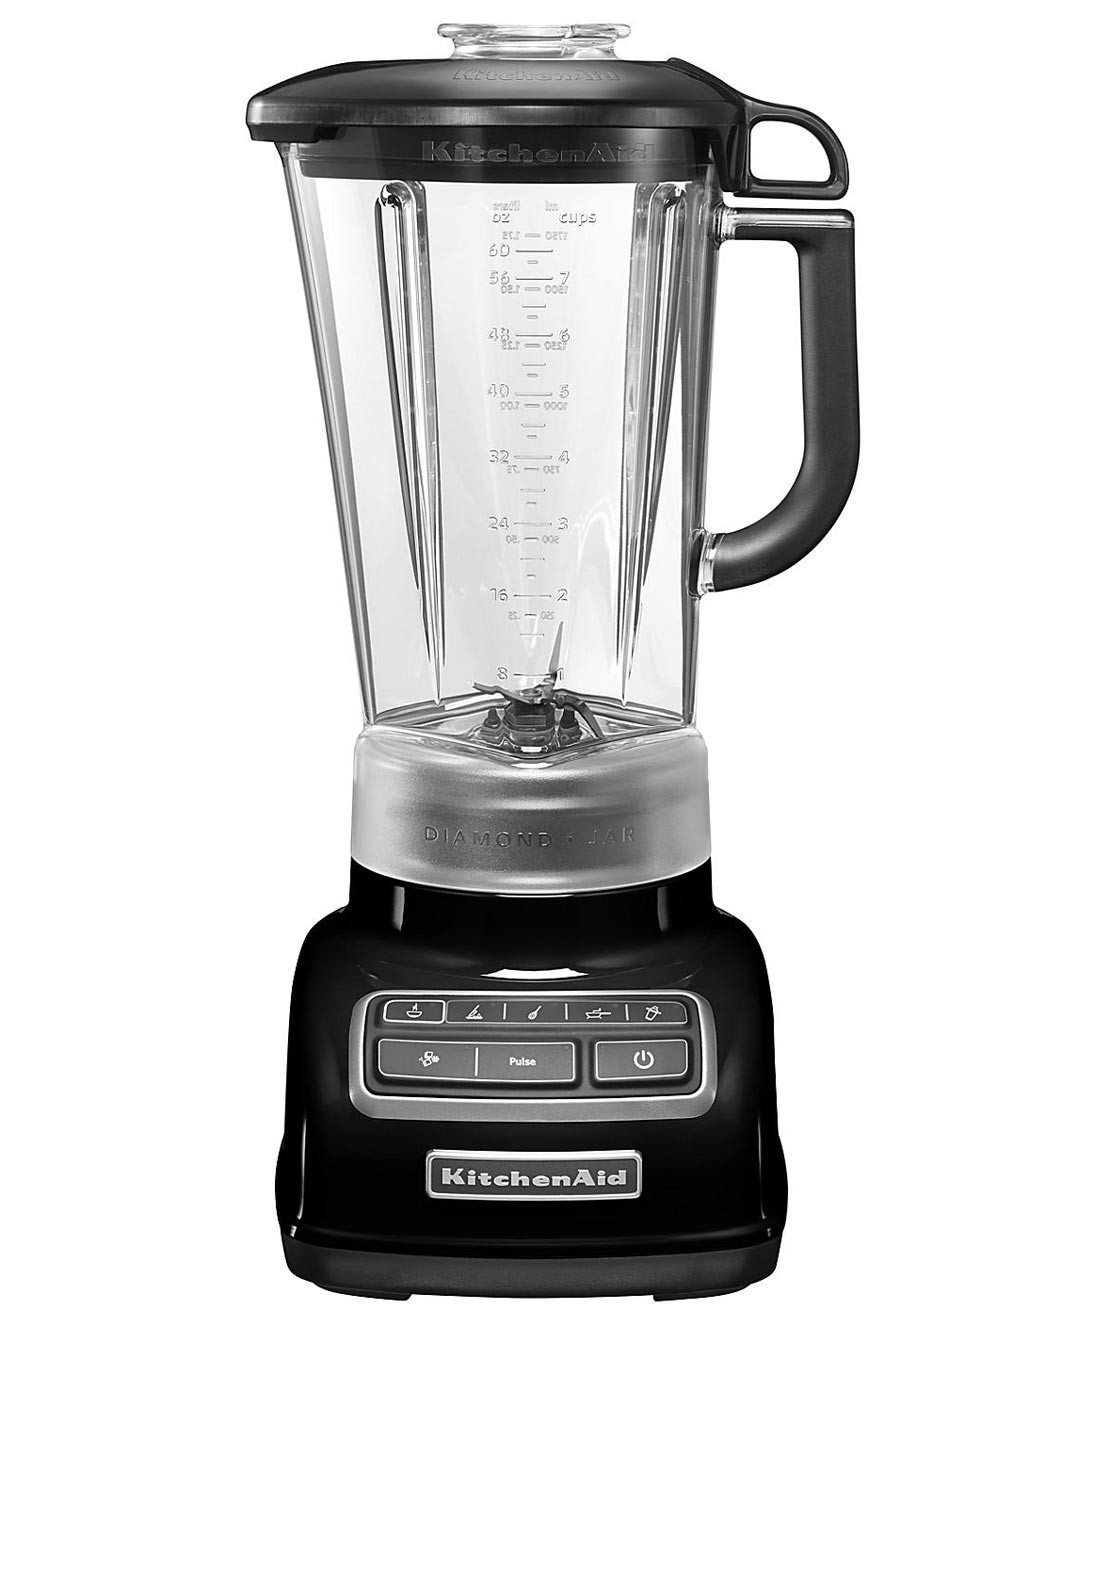 KitchenAid Diamond Blender 1.75L, Black